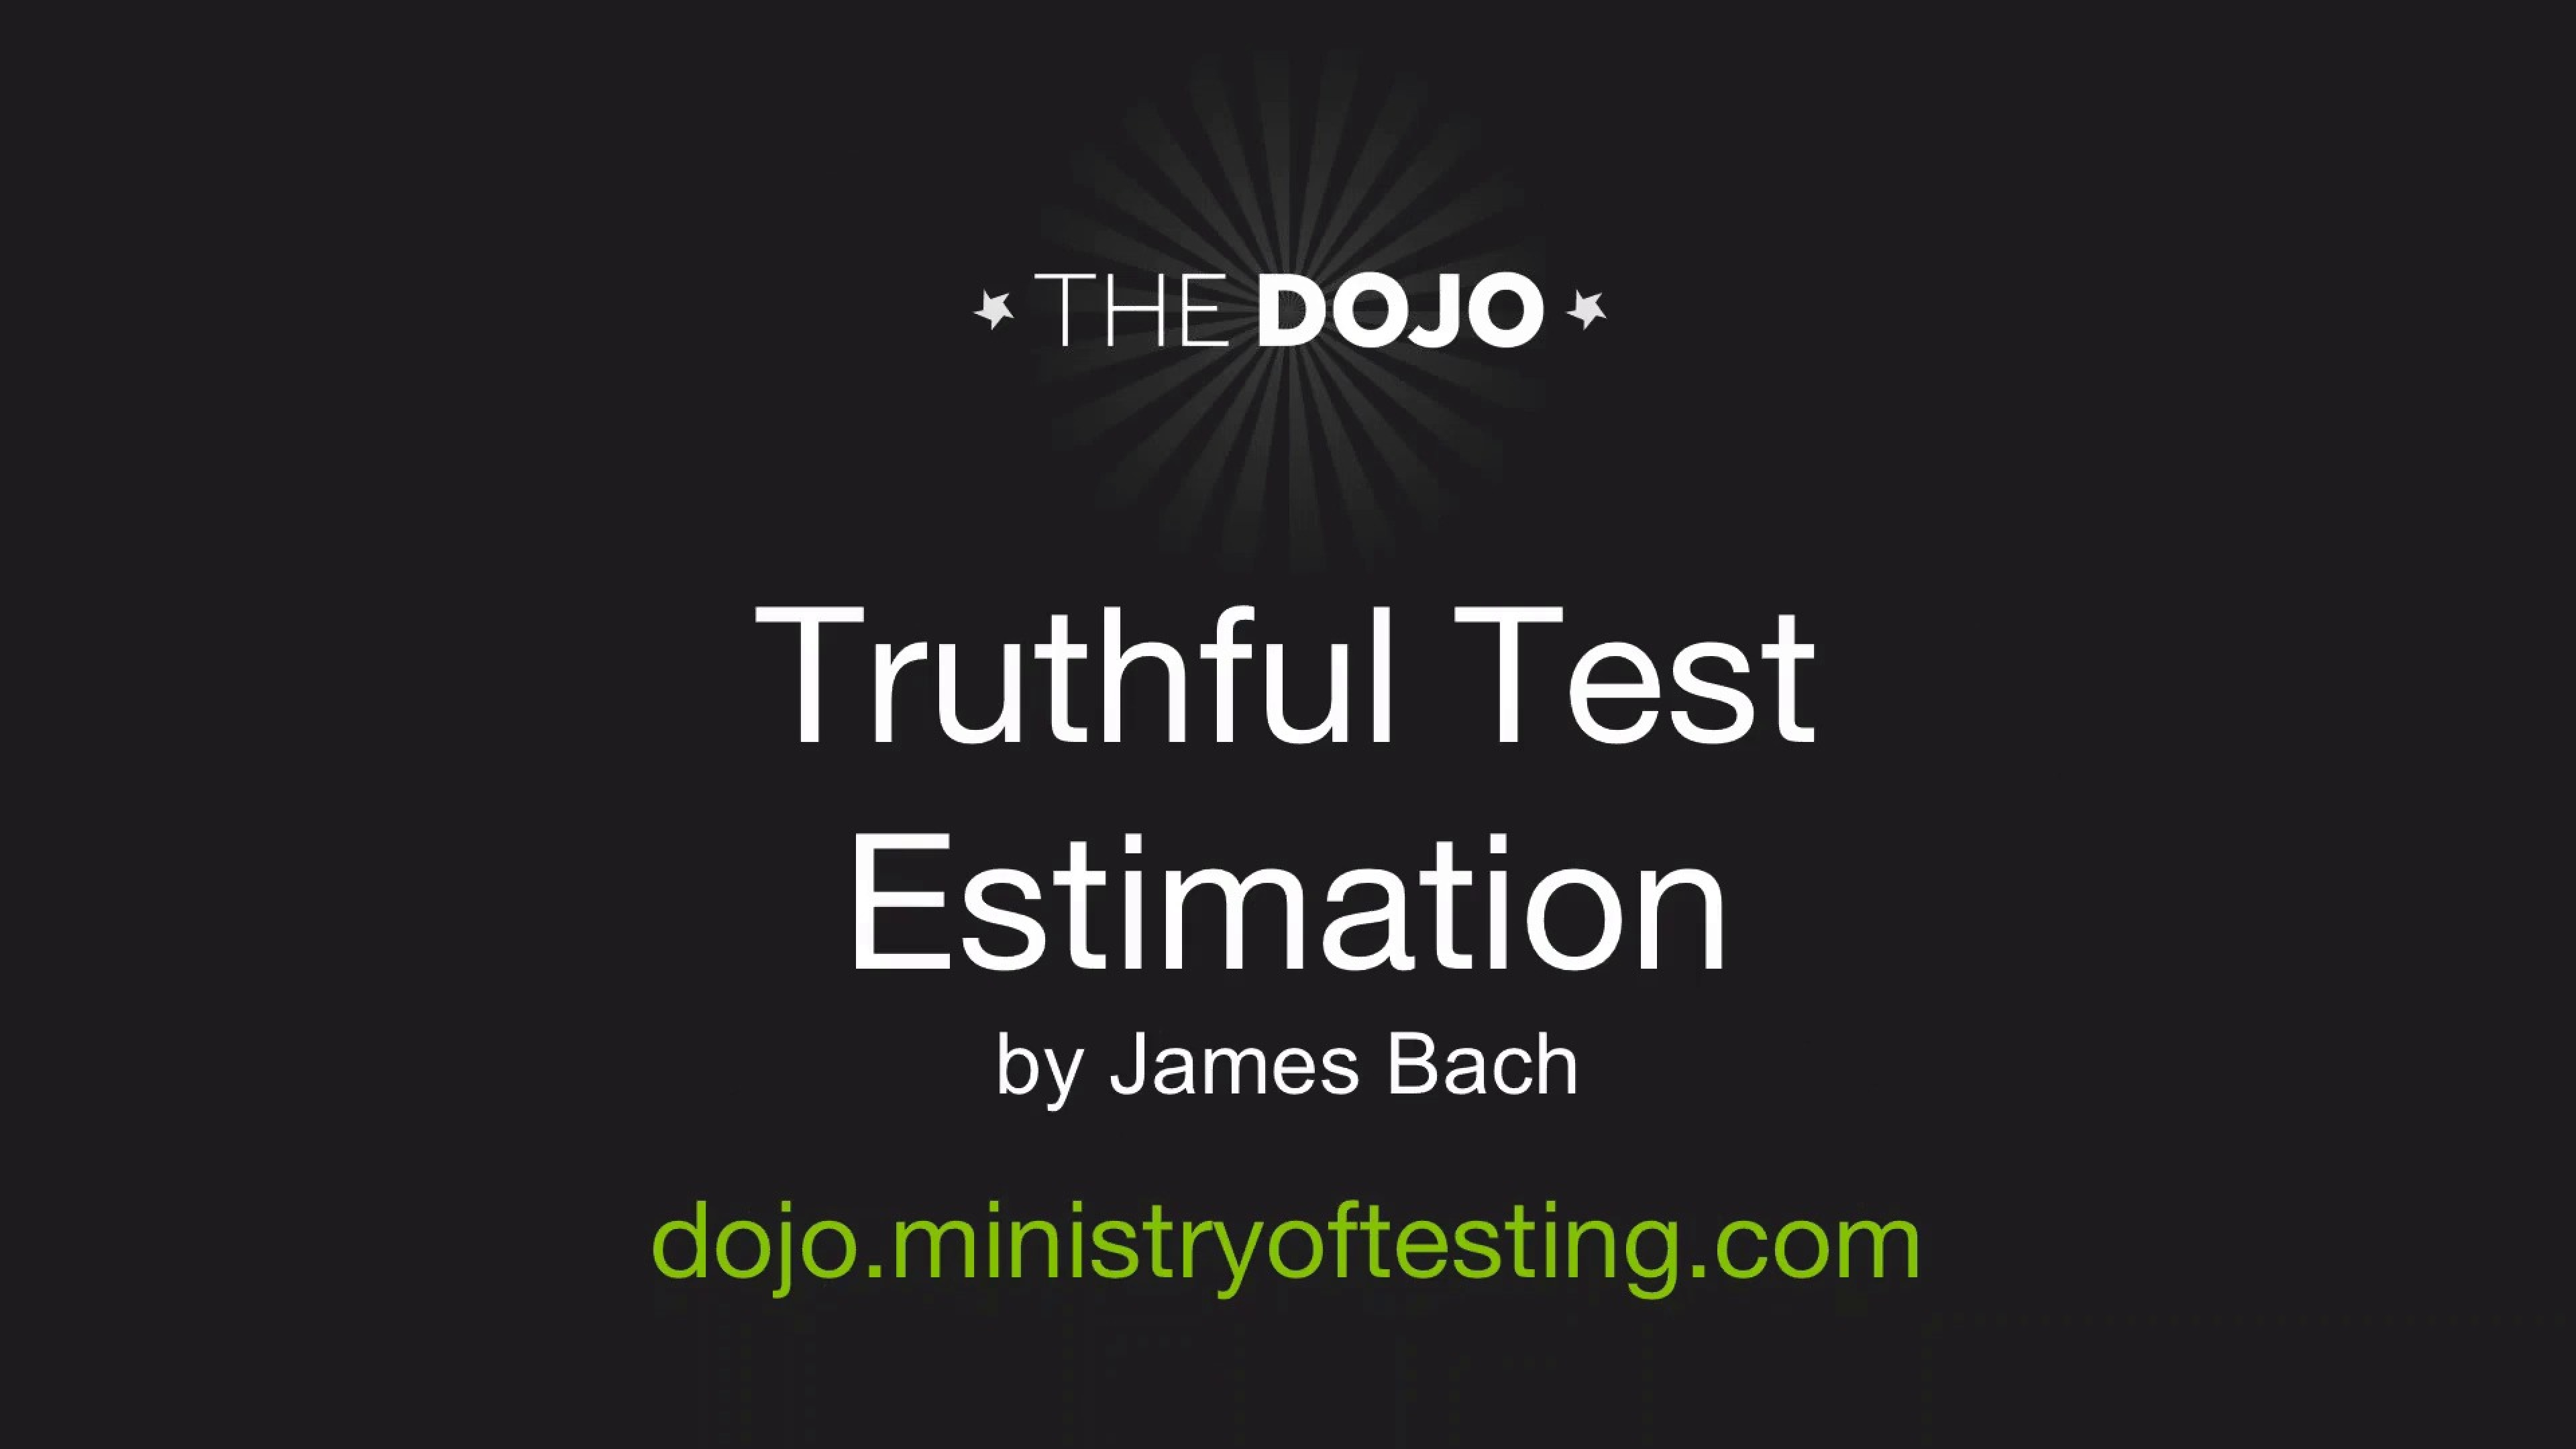 Truthful Test Estimation with James Bach